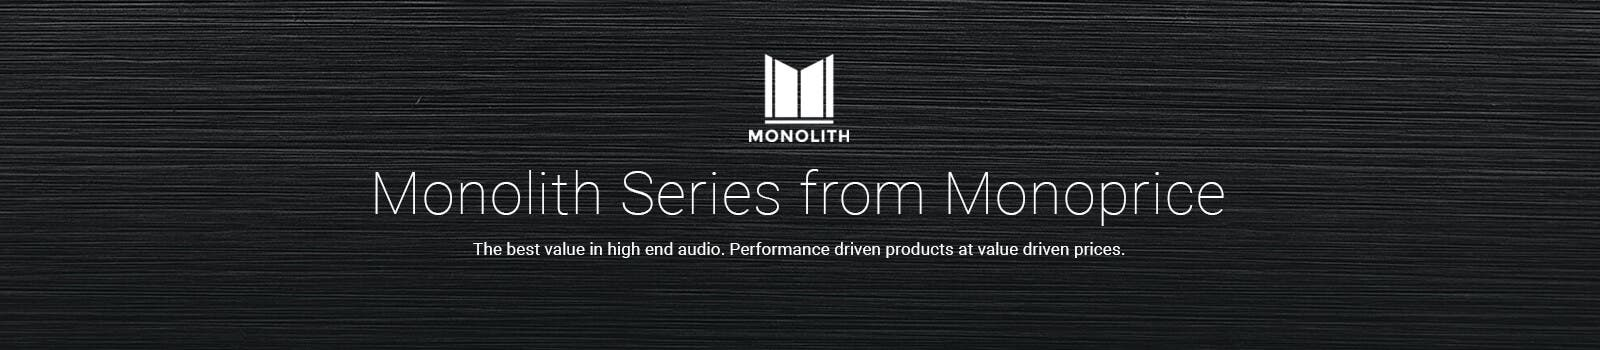 Monolith Series by monoprice, the best value in high end audio, performance driven products at value driven prices